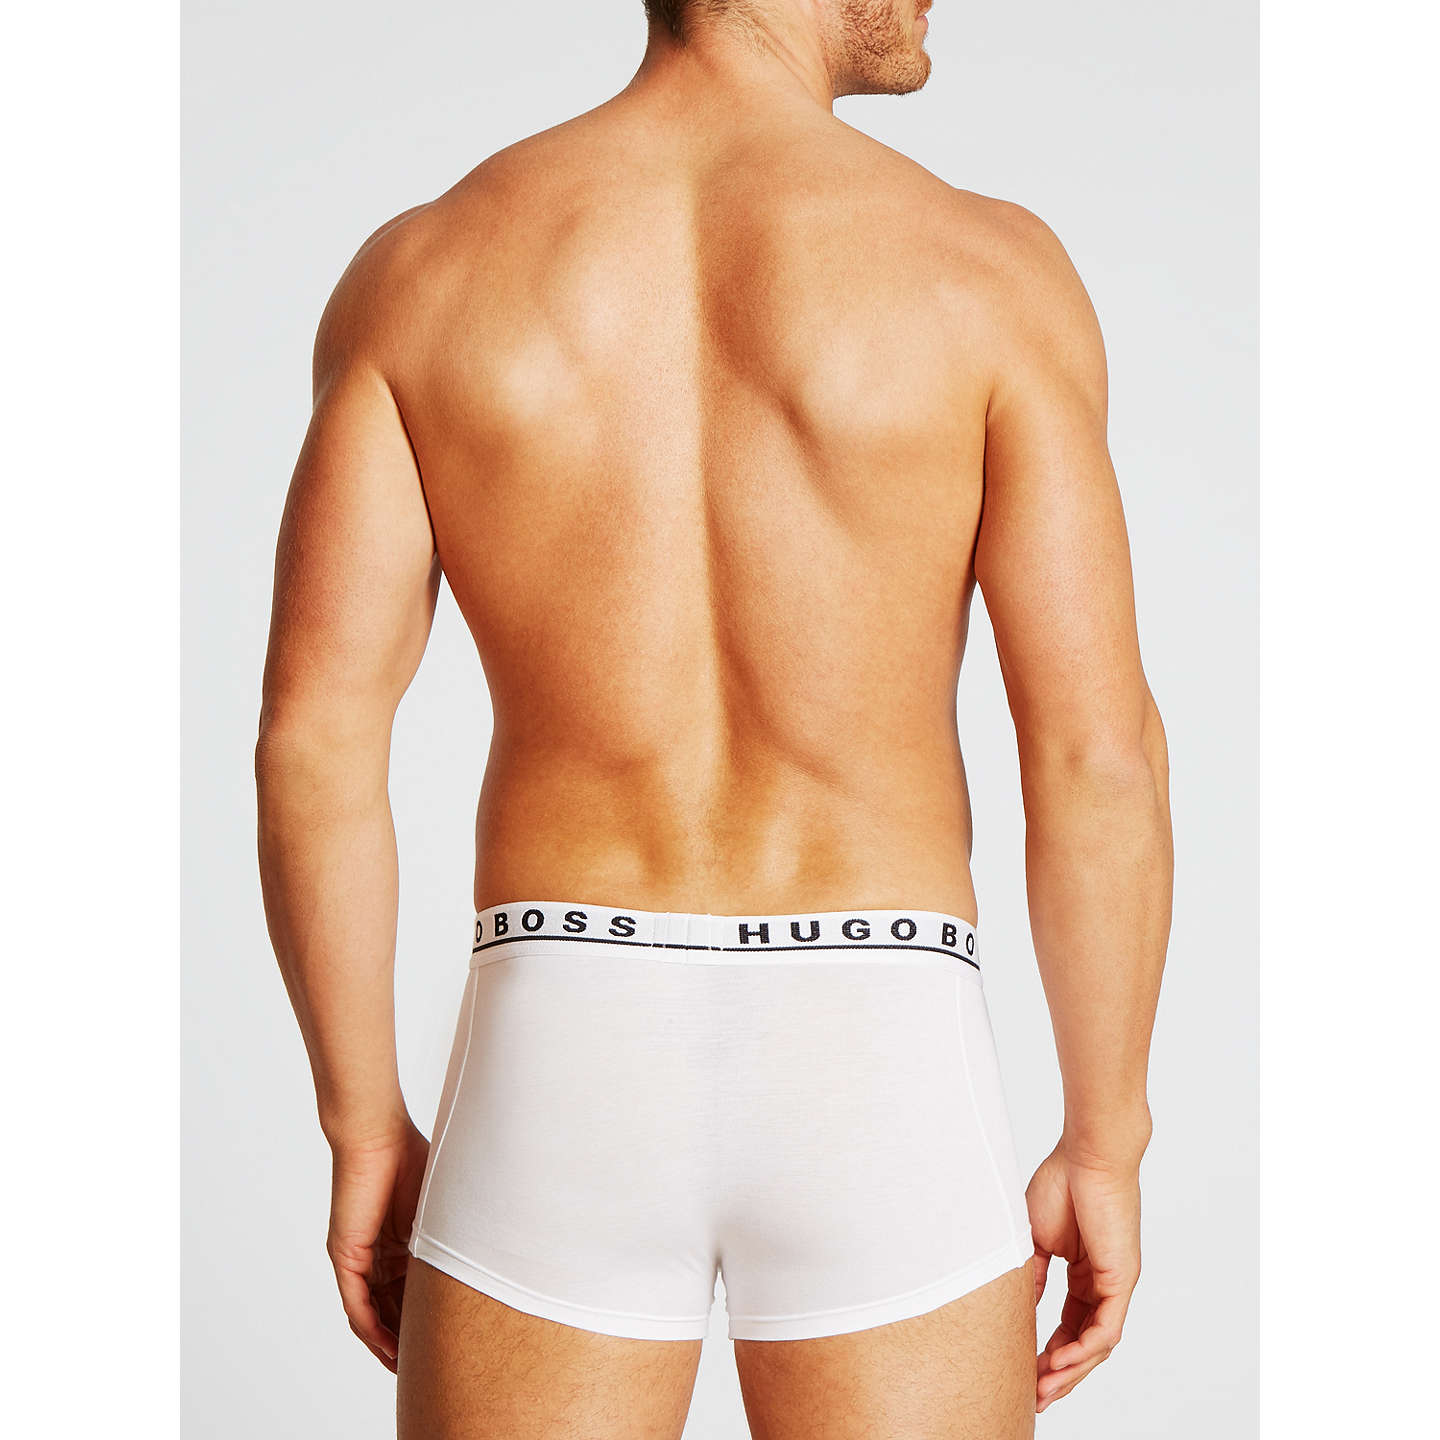 BuyBOSS Stretch Cotton Trunks, Pack of 3, White, S Online at johnlewis.com